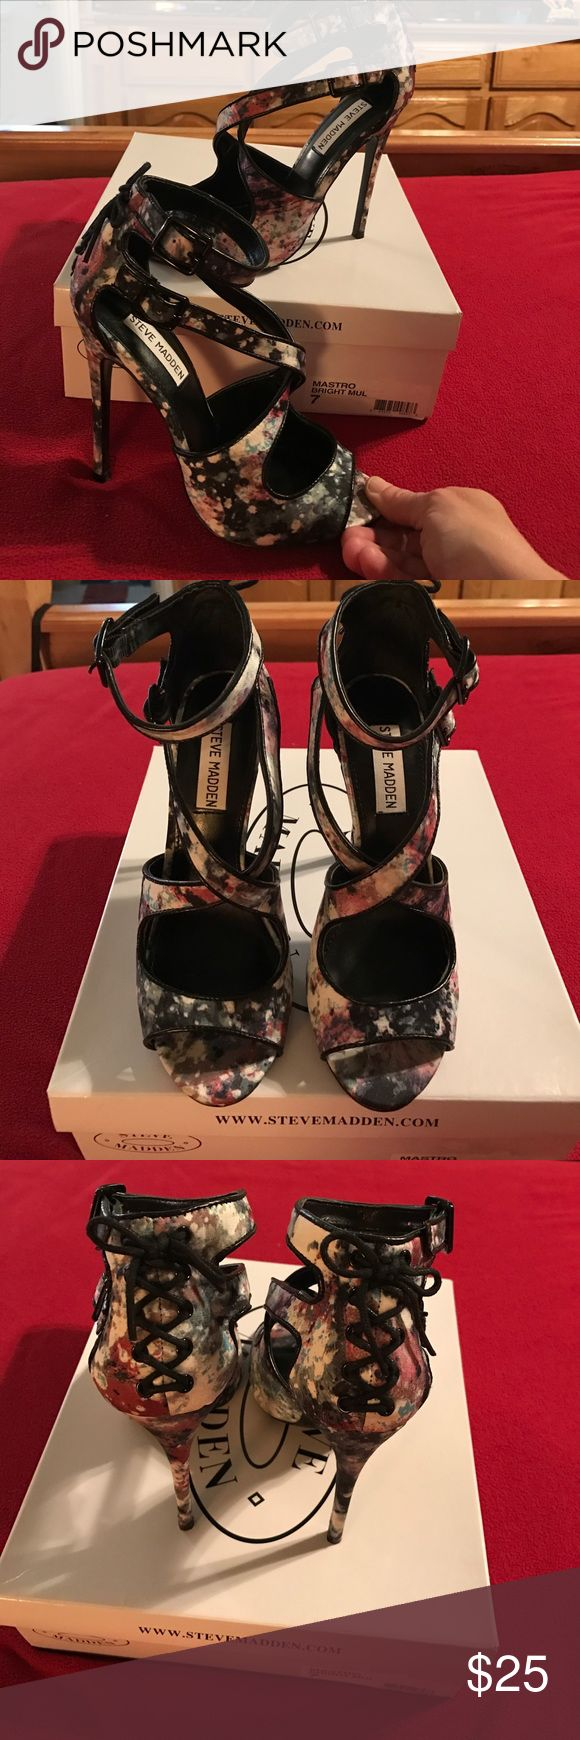 Like new Steve Madden floral strappy heels 7M Like new Steve Madden floral strappy heels 7M. Beautiful muted pinks, blues, grays on a black background. Worn one time. Steve Madden Shoes Heels